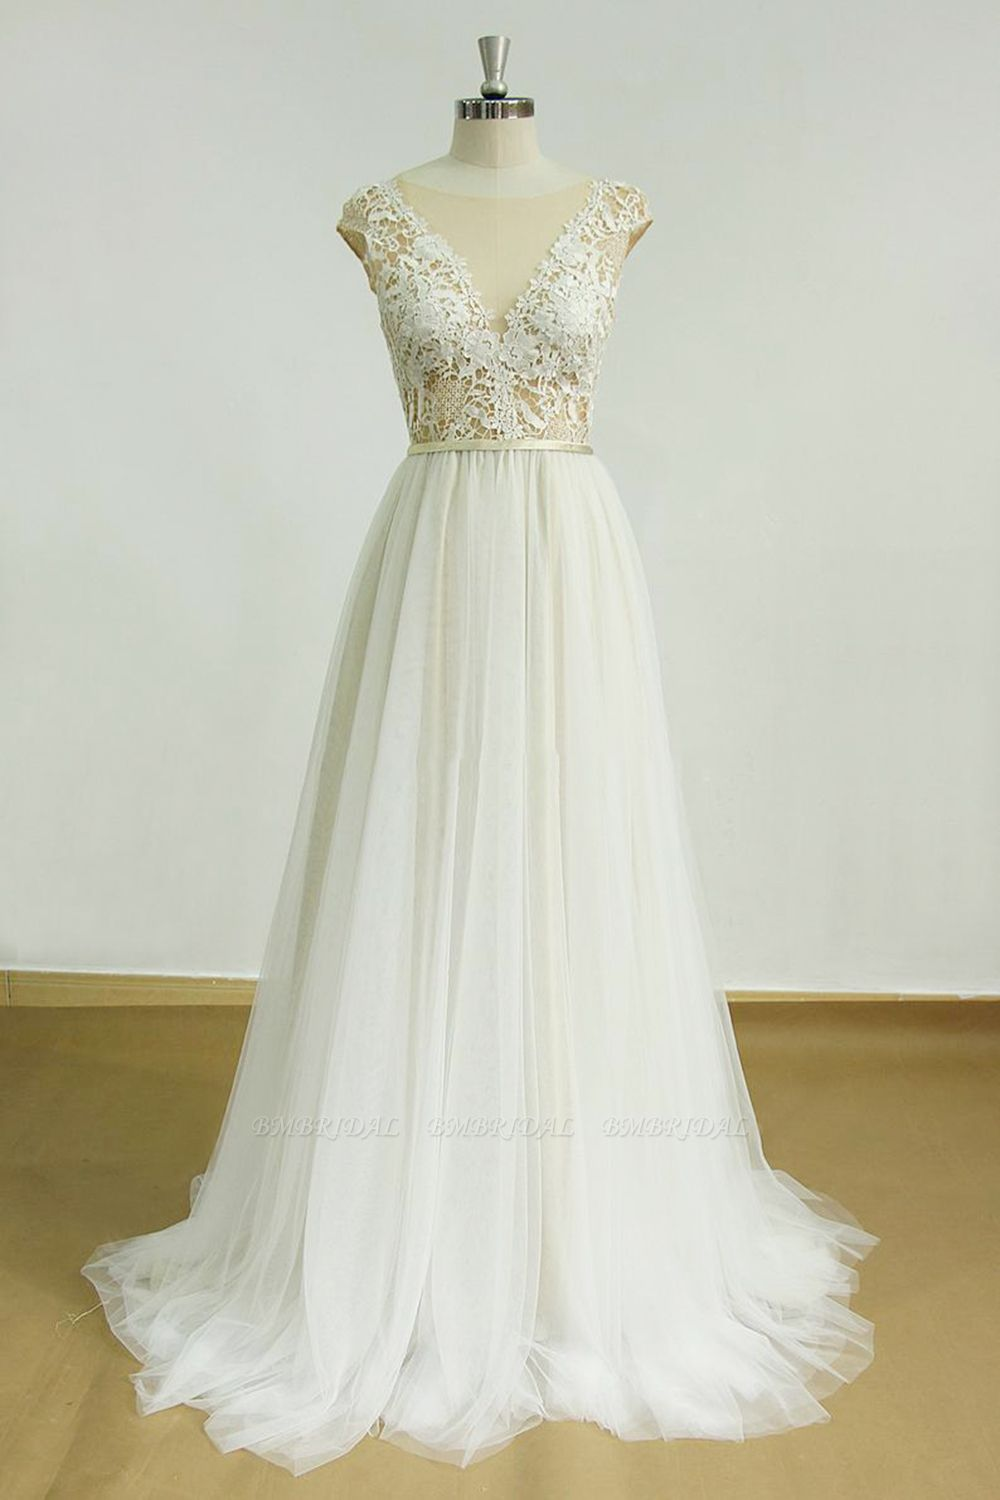 BMbridal Elegant Jewel Tulle Lace Wedding Dress Sleeveless Appliques Bridal Gowns On Sale